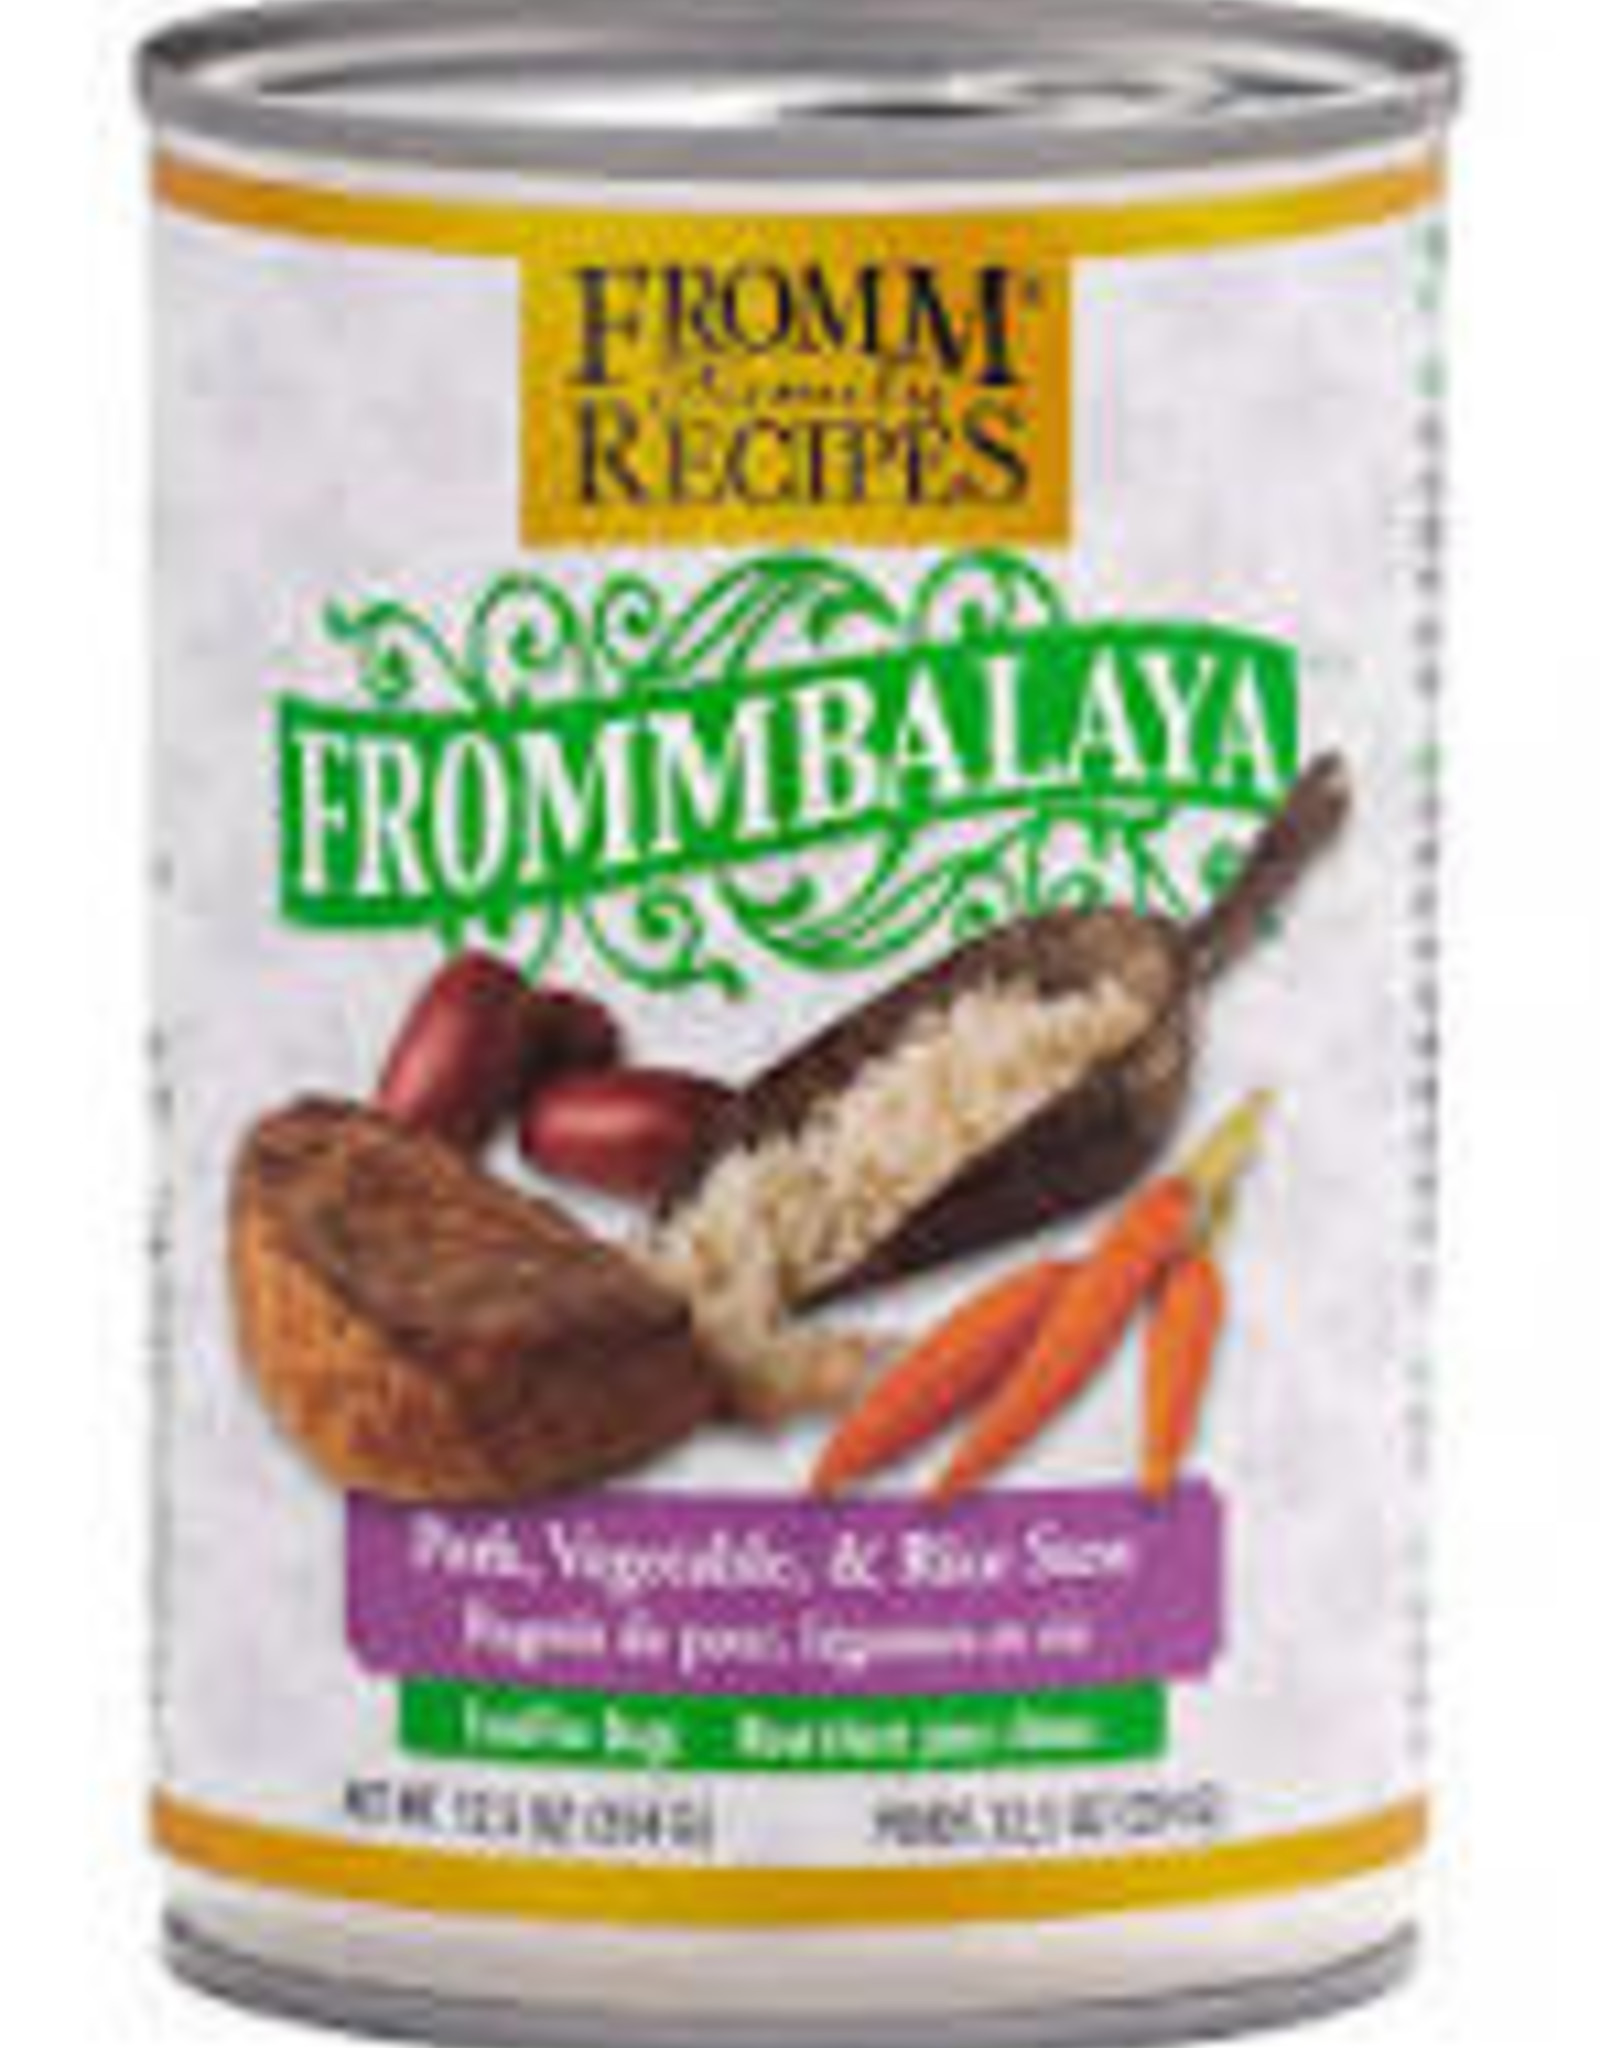 Fromm Frommbalaya Pork